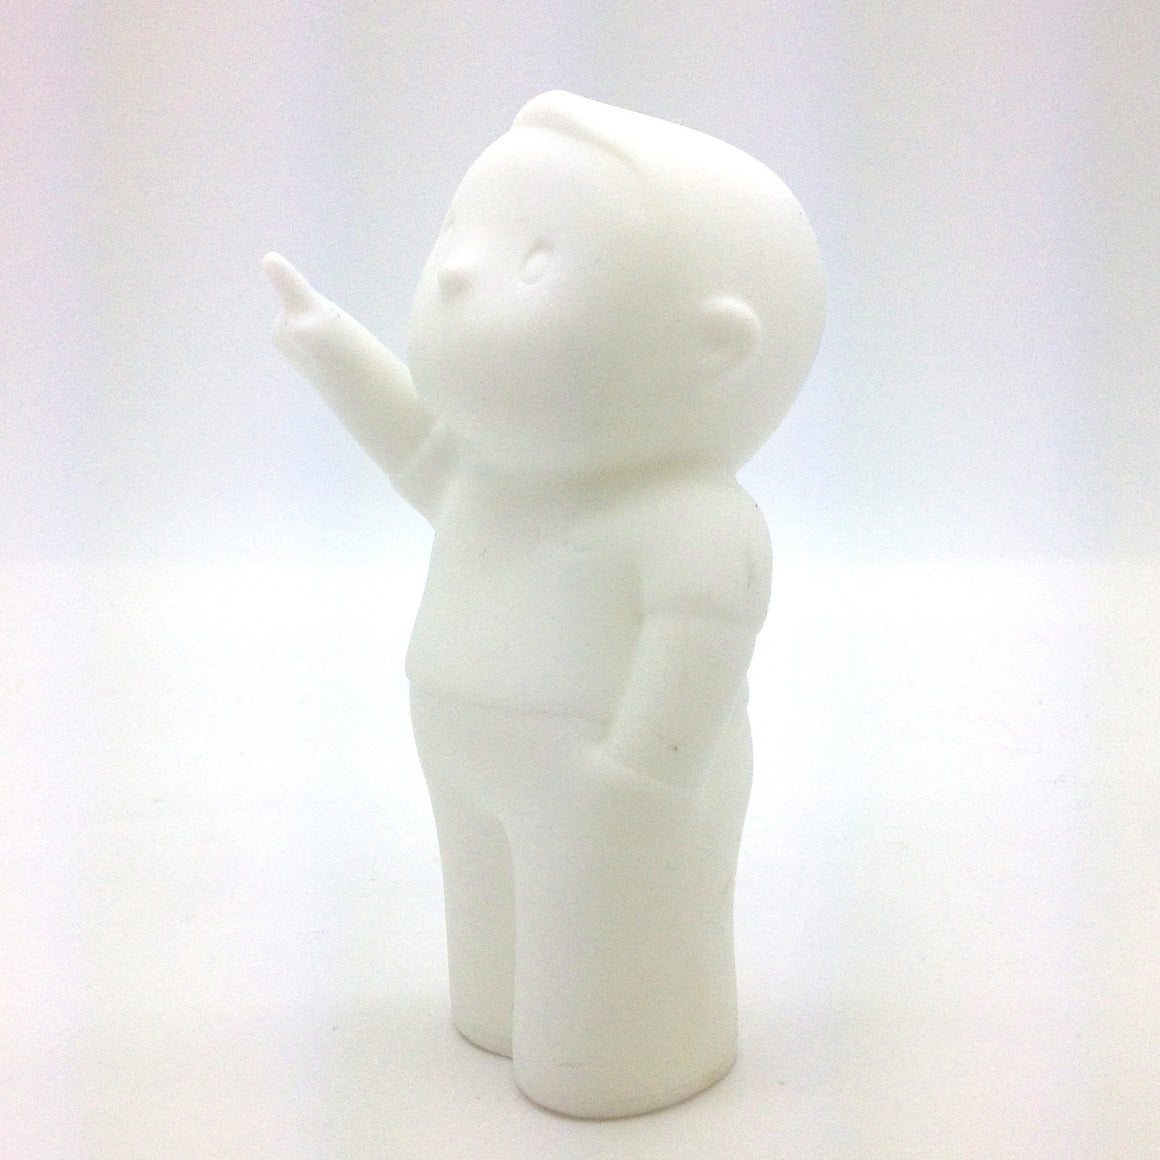 Tian Tian Blank Boy Canvas DIY Vinyl Toy - Mindzai  - 1